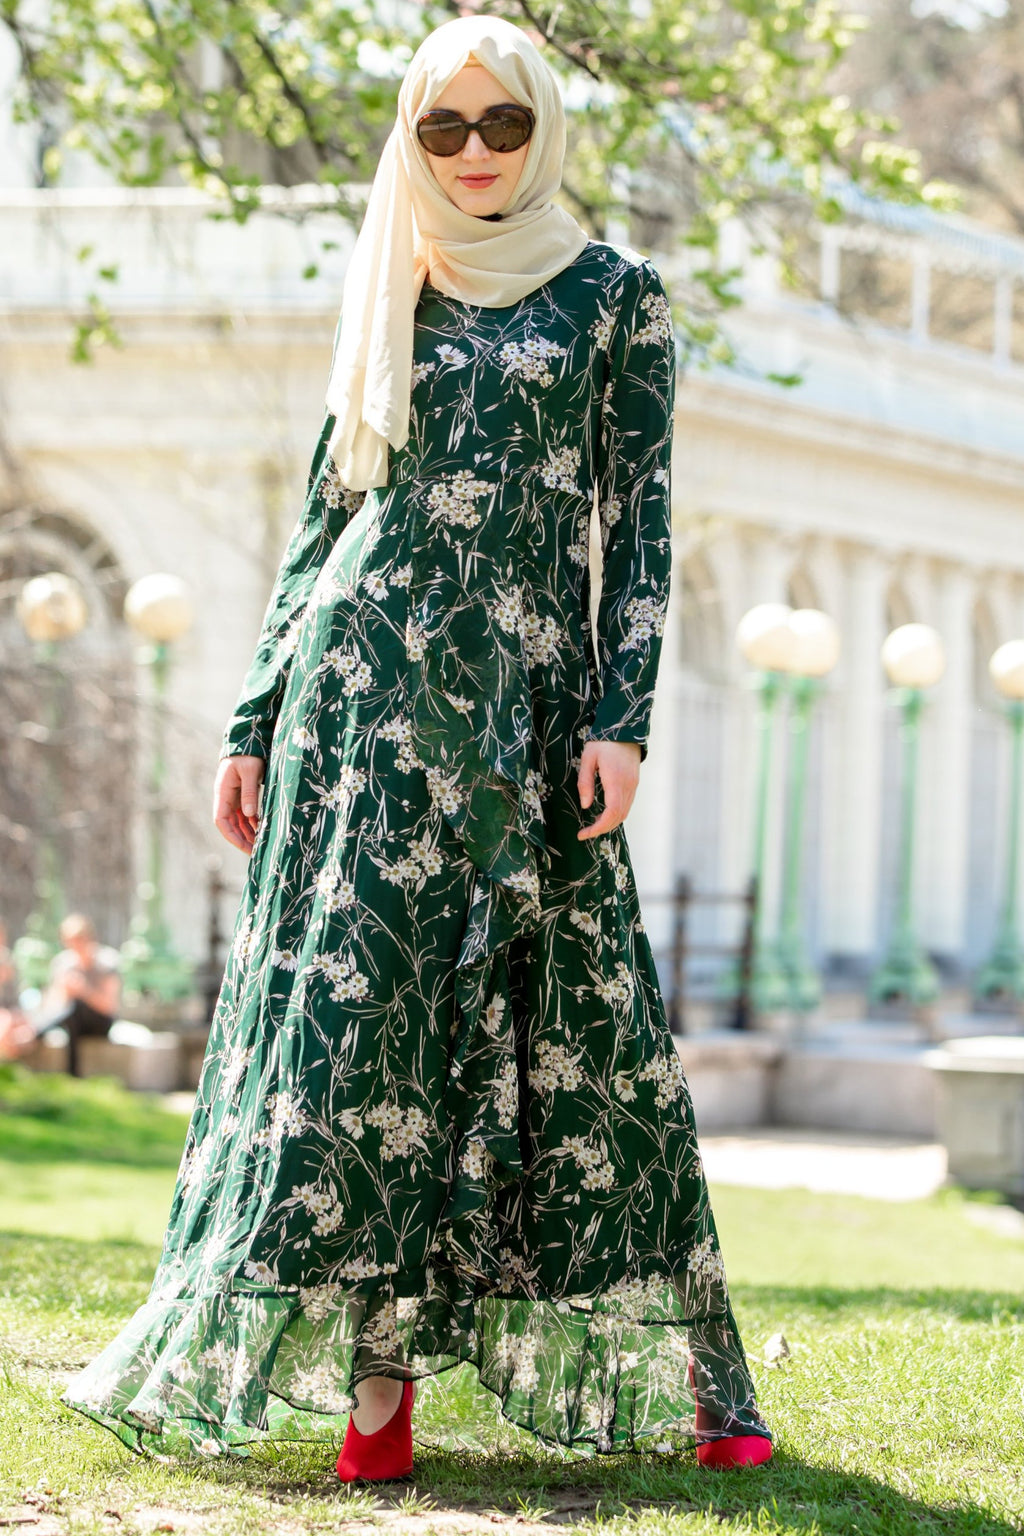 Green and White Ruffle Floral Maxi Dress With Sleeves-Maxi Dresses-Urban Modesty Inc.